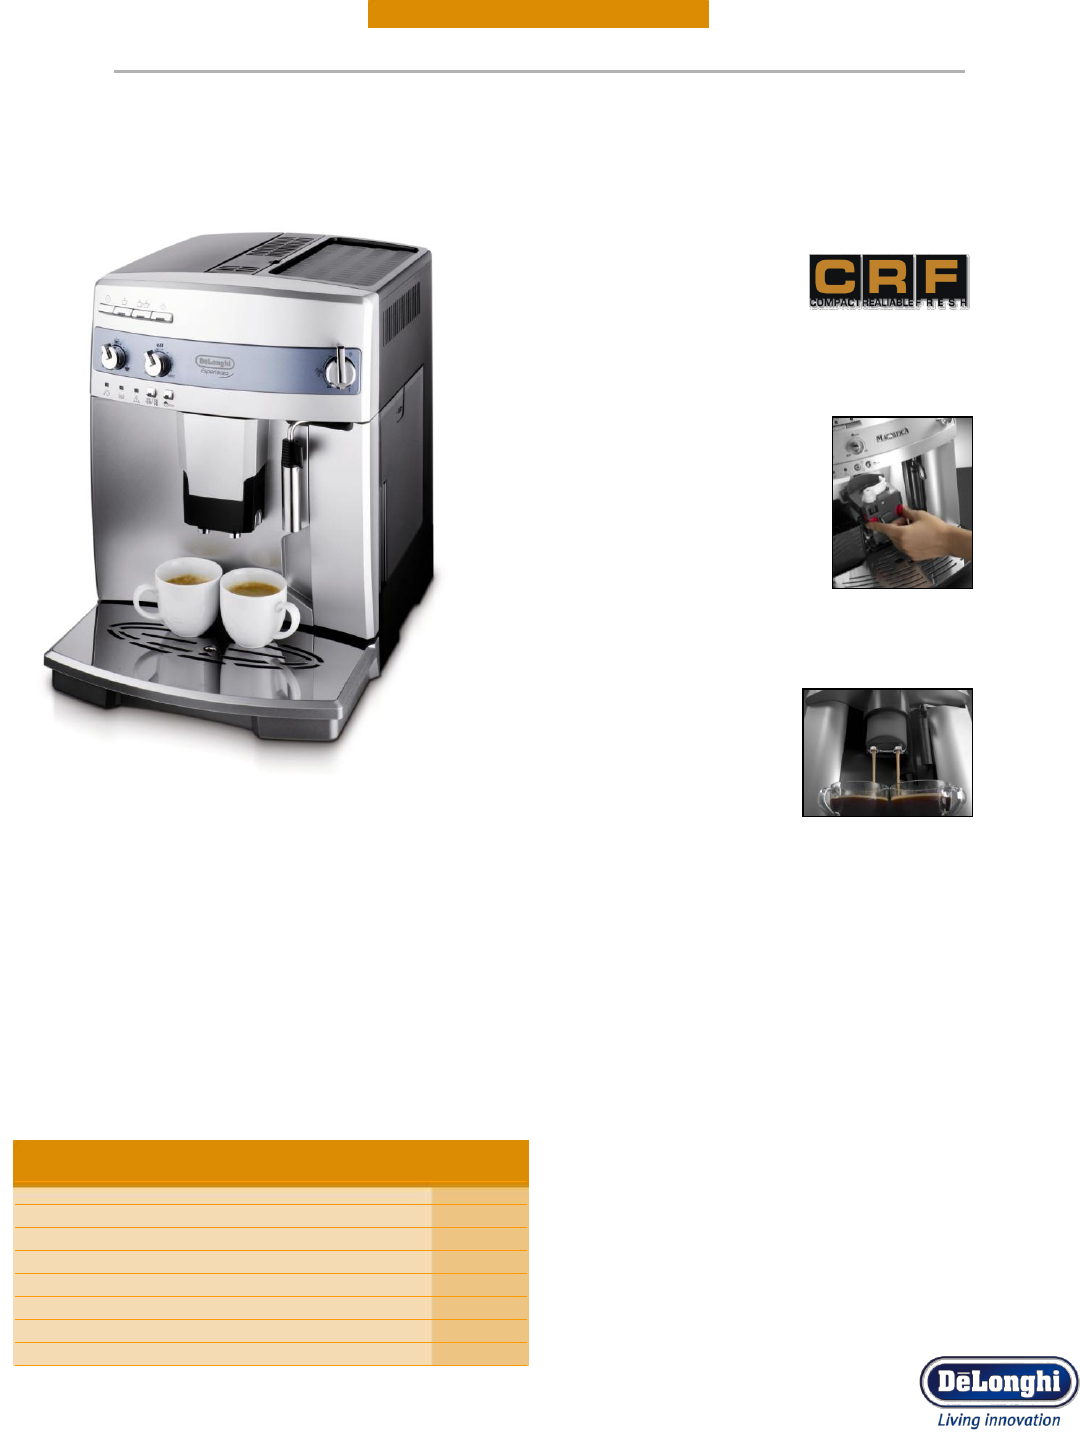 Delonghi Coffee Maker Ec330s User Guide : DeLonghi Coffeemaker ESAM 03.110.S EX1 User Guide ManualsOnline.com